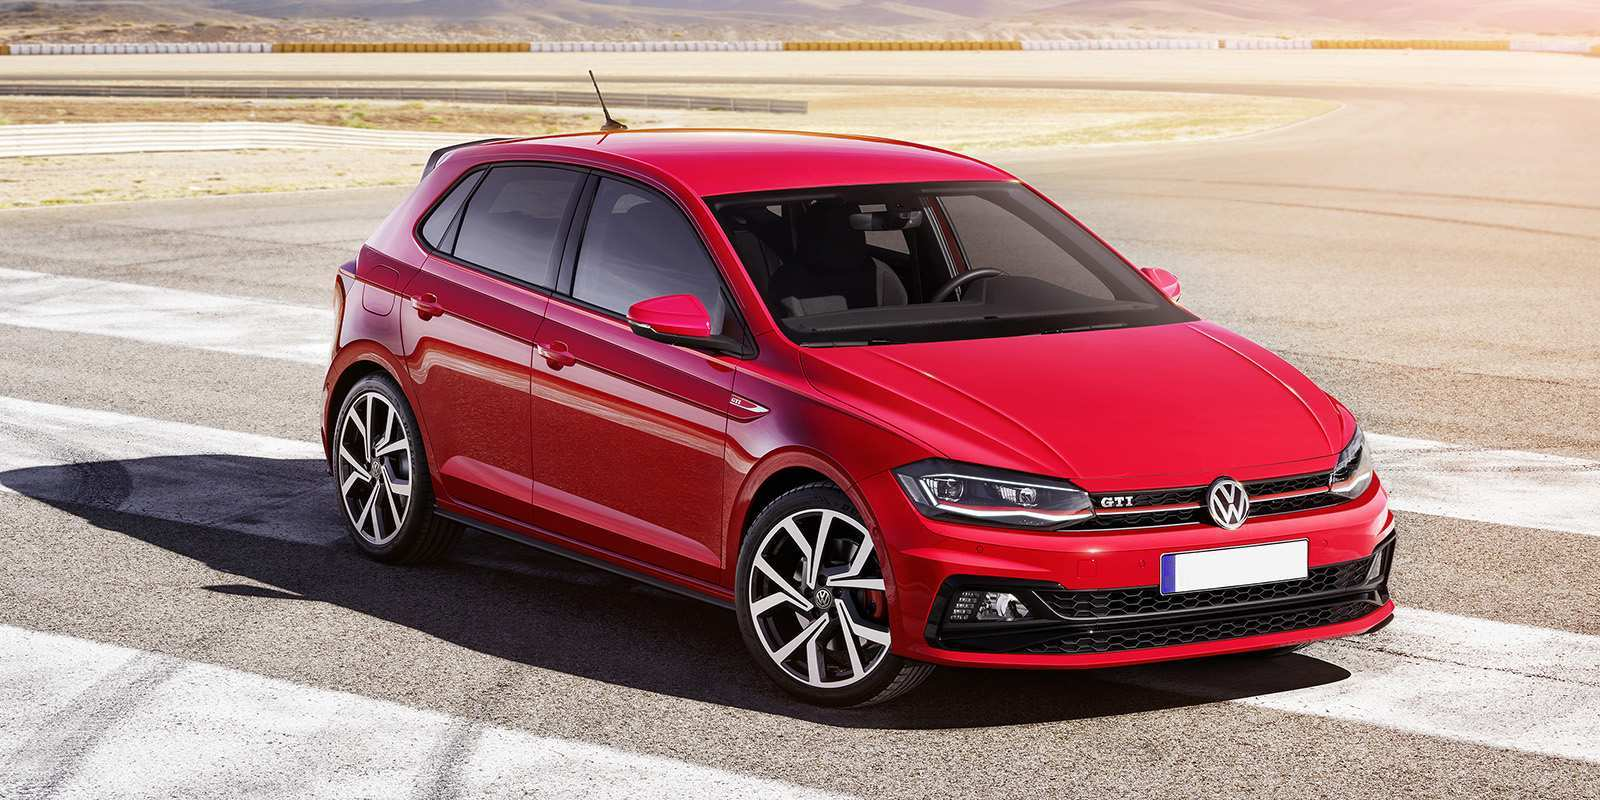 79 Gallery of Volkswagen Polo Facelift 2020 Exterior and Interior for Volkswagen Polo Facelift 2020